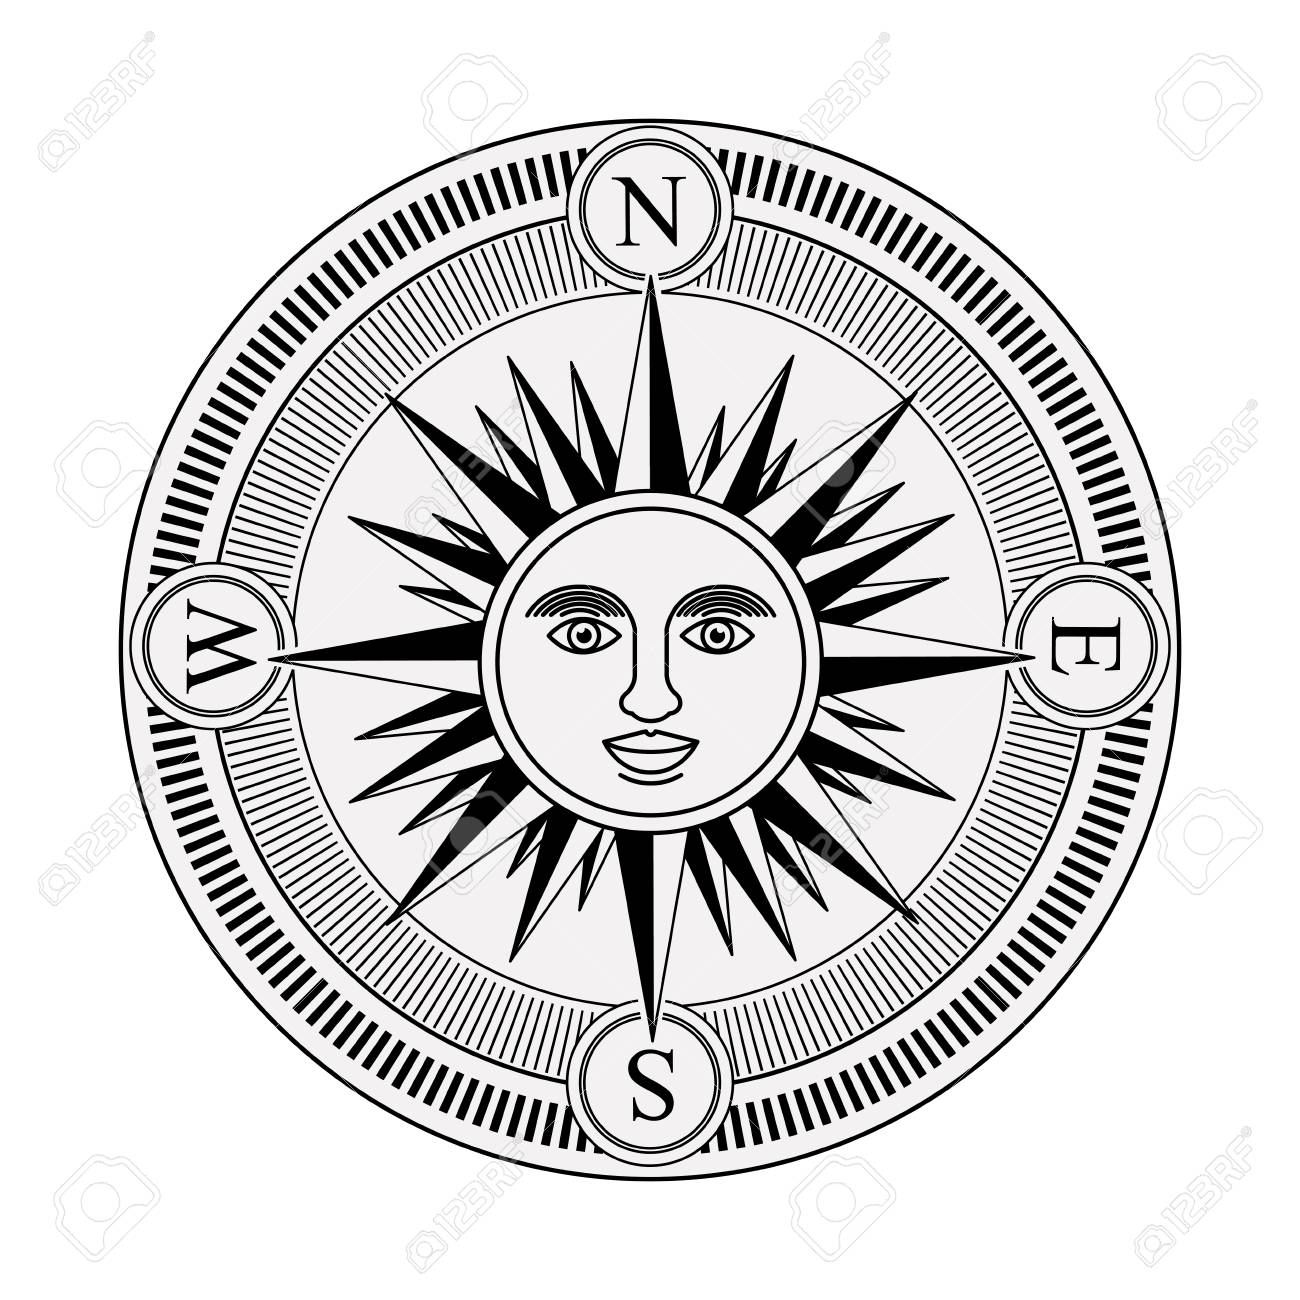 Vintage Compass Rose With The Sun In Center Black And White